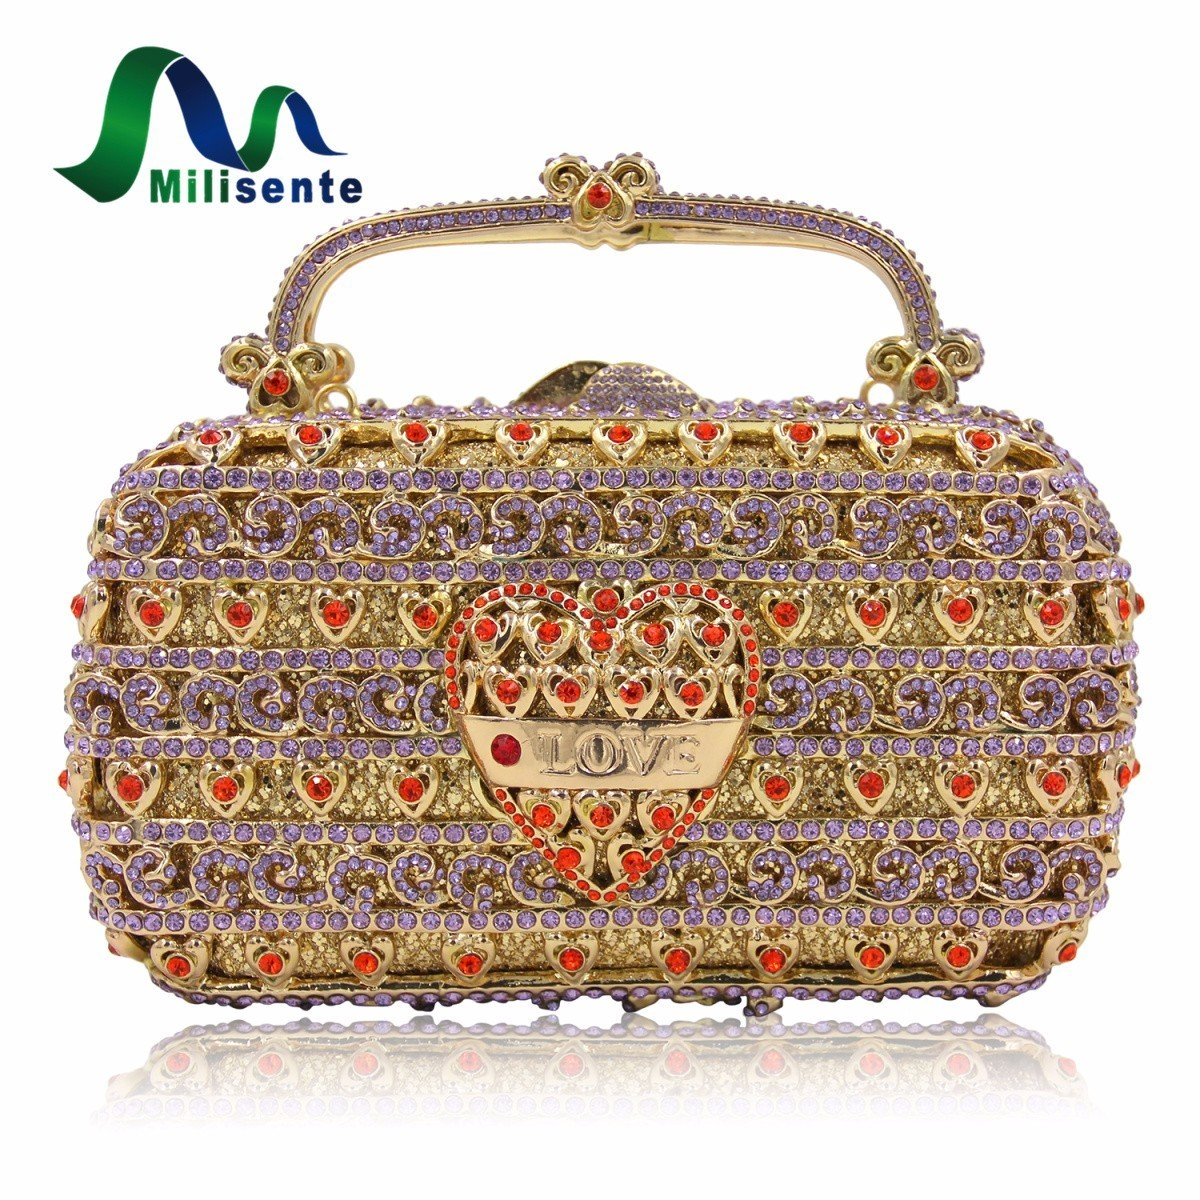 Milisente Women Crystal Evening Bags Luxury Pattern Purple Party Bag Love Heart Designer Wedding Clutches Purses Long Chain milisente high quality luxury crystal evening bag women wedding purses lady party clutch handbag green blue gold white